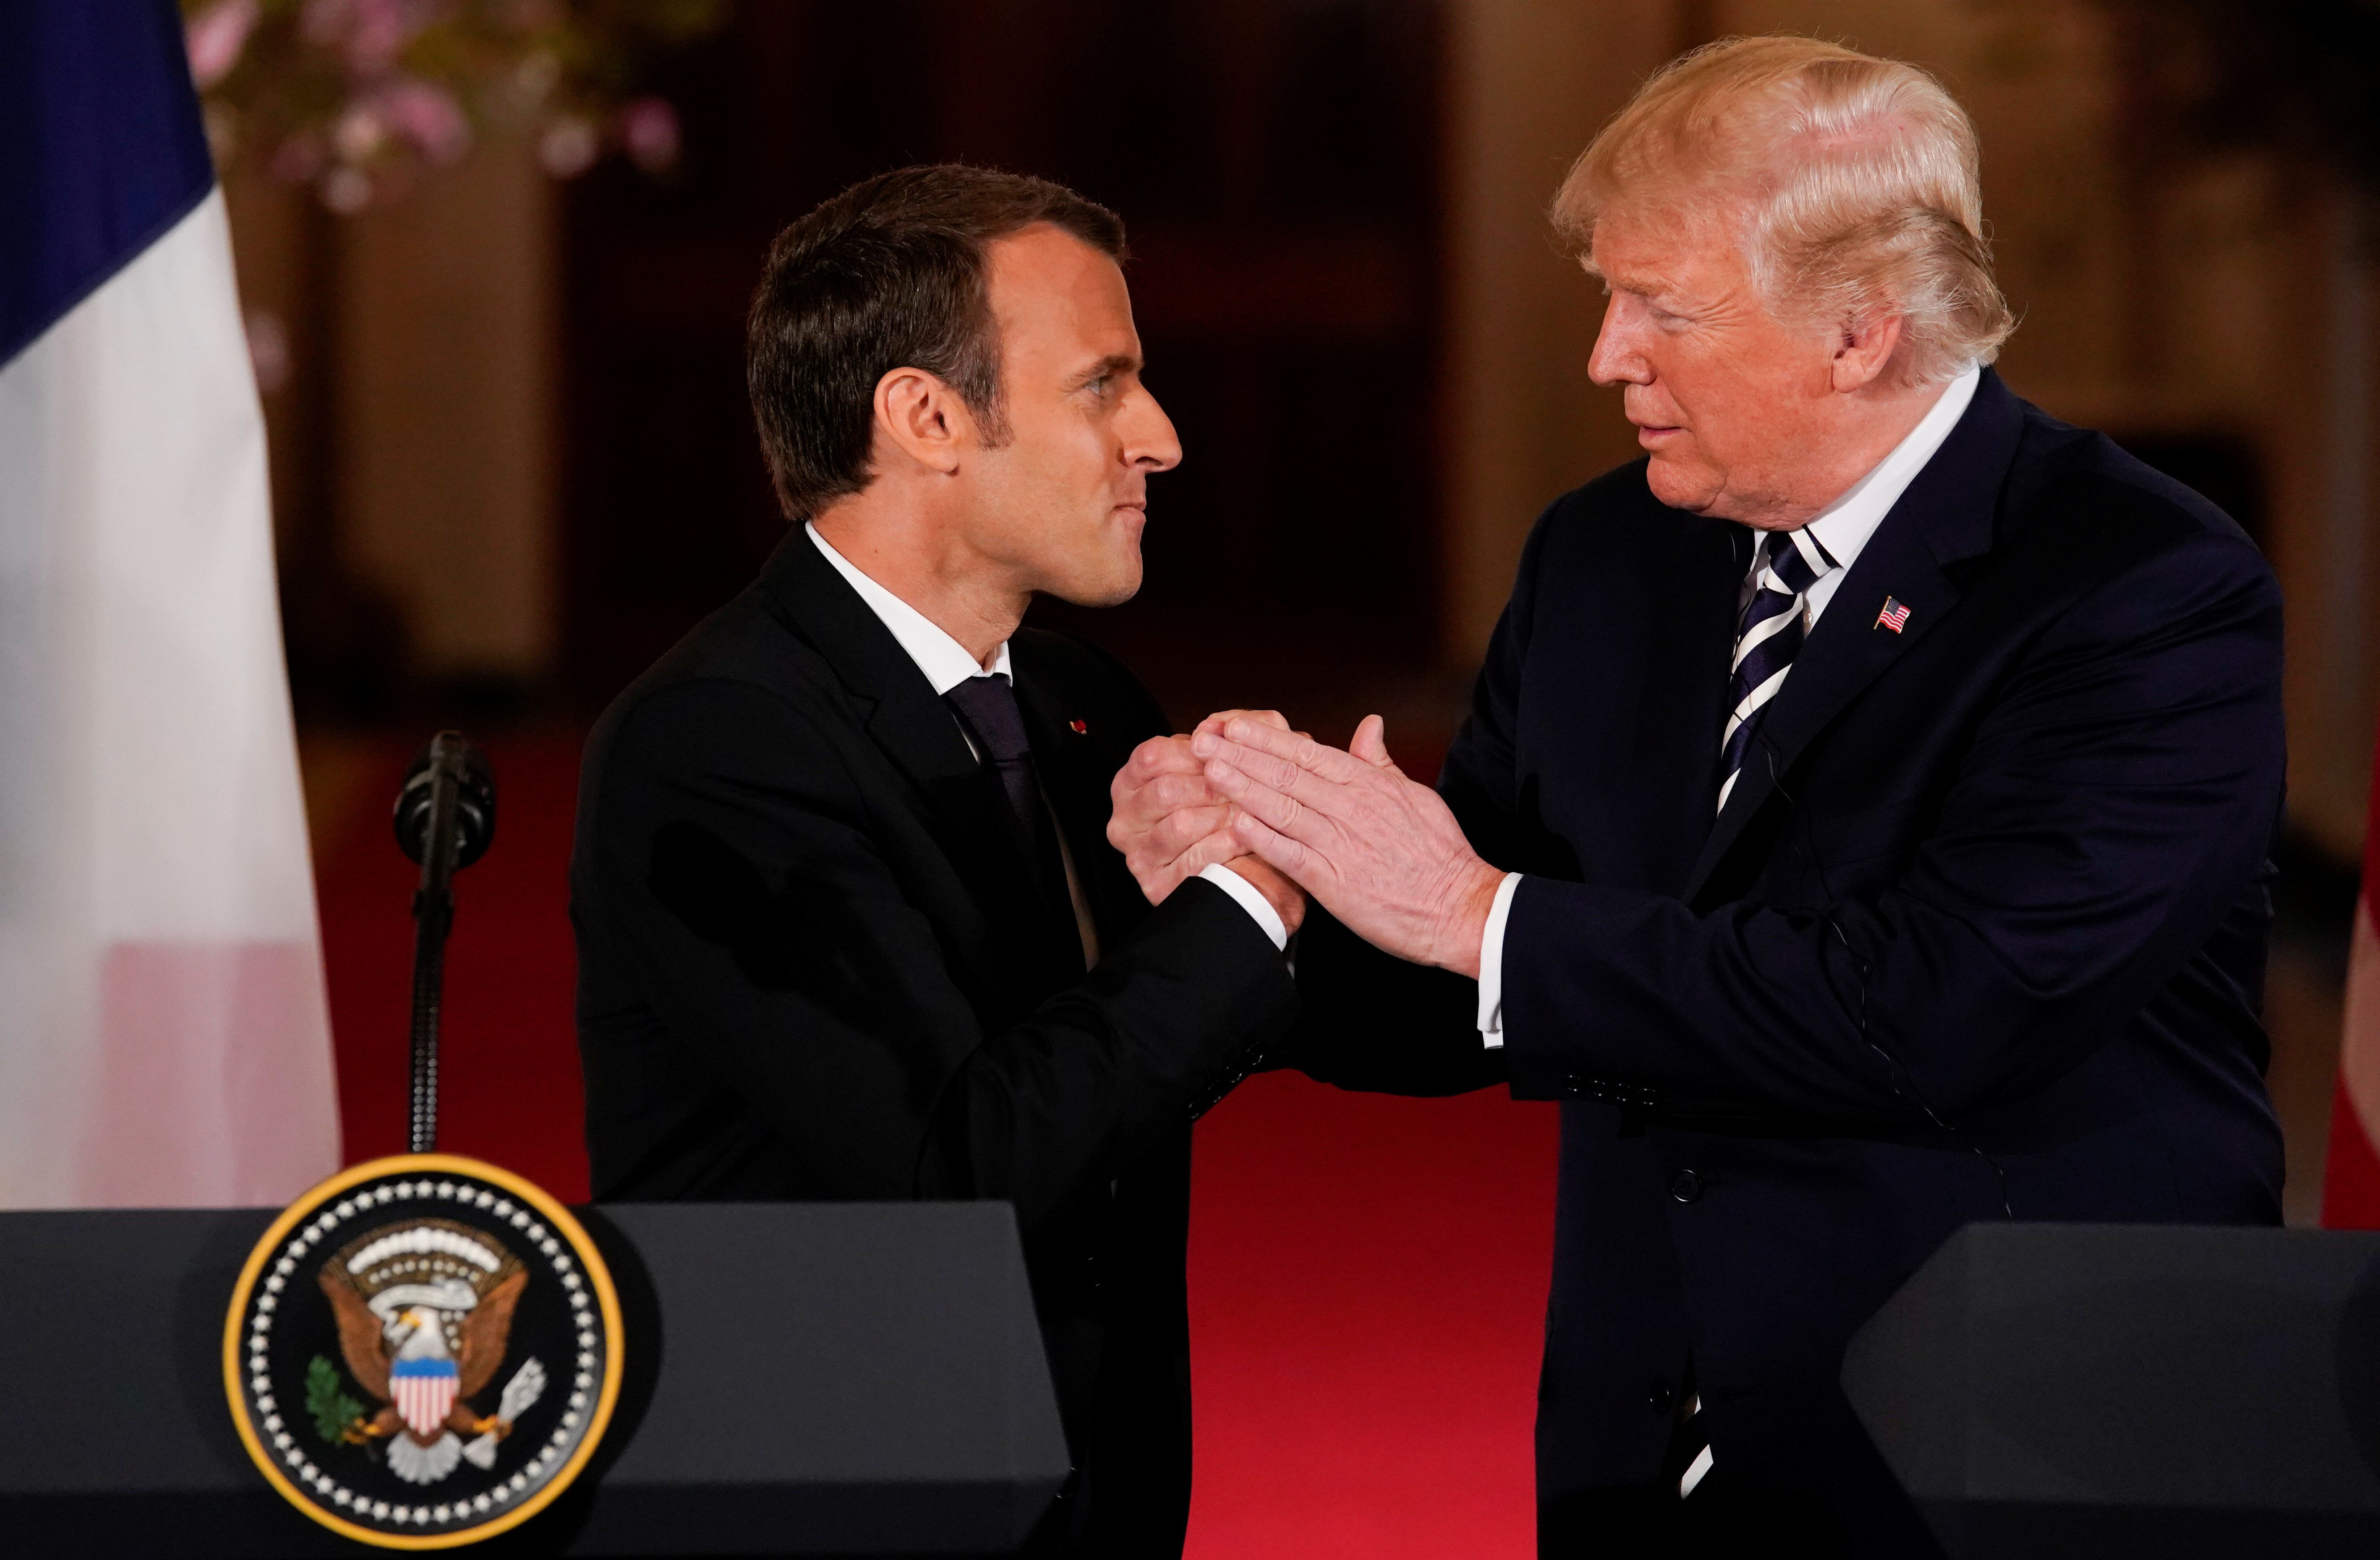 Trump Shared One Awkward Kiss And Handshake With Emmanuel Macron